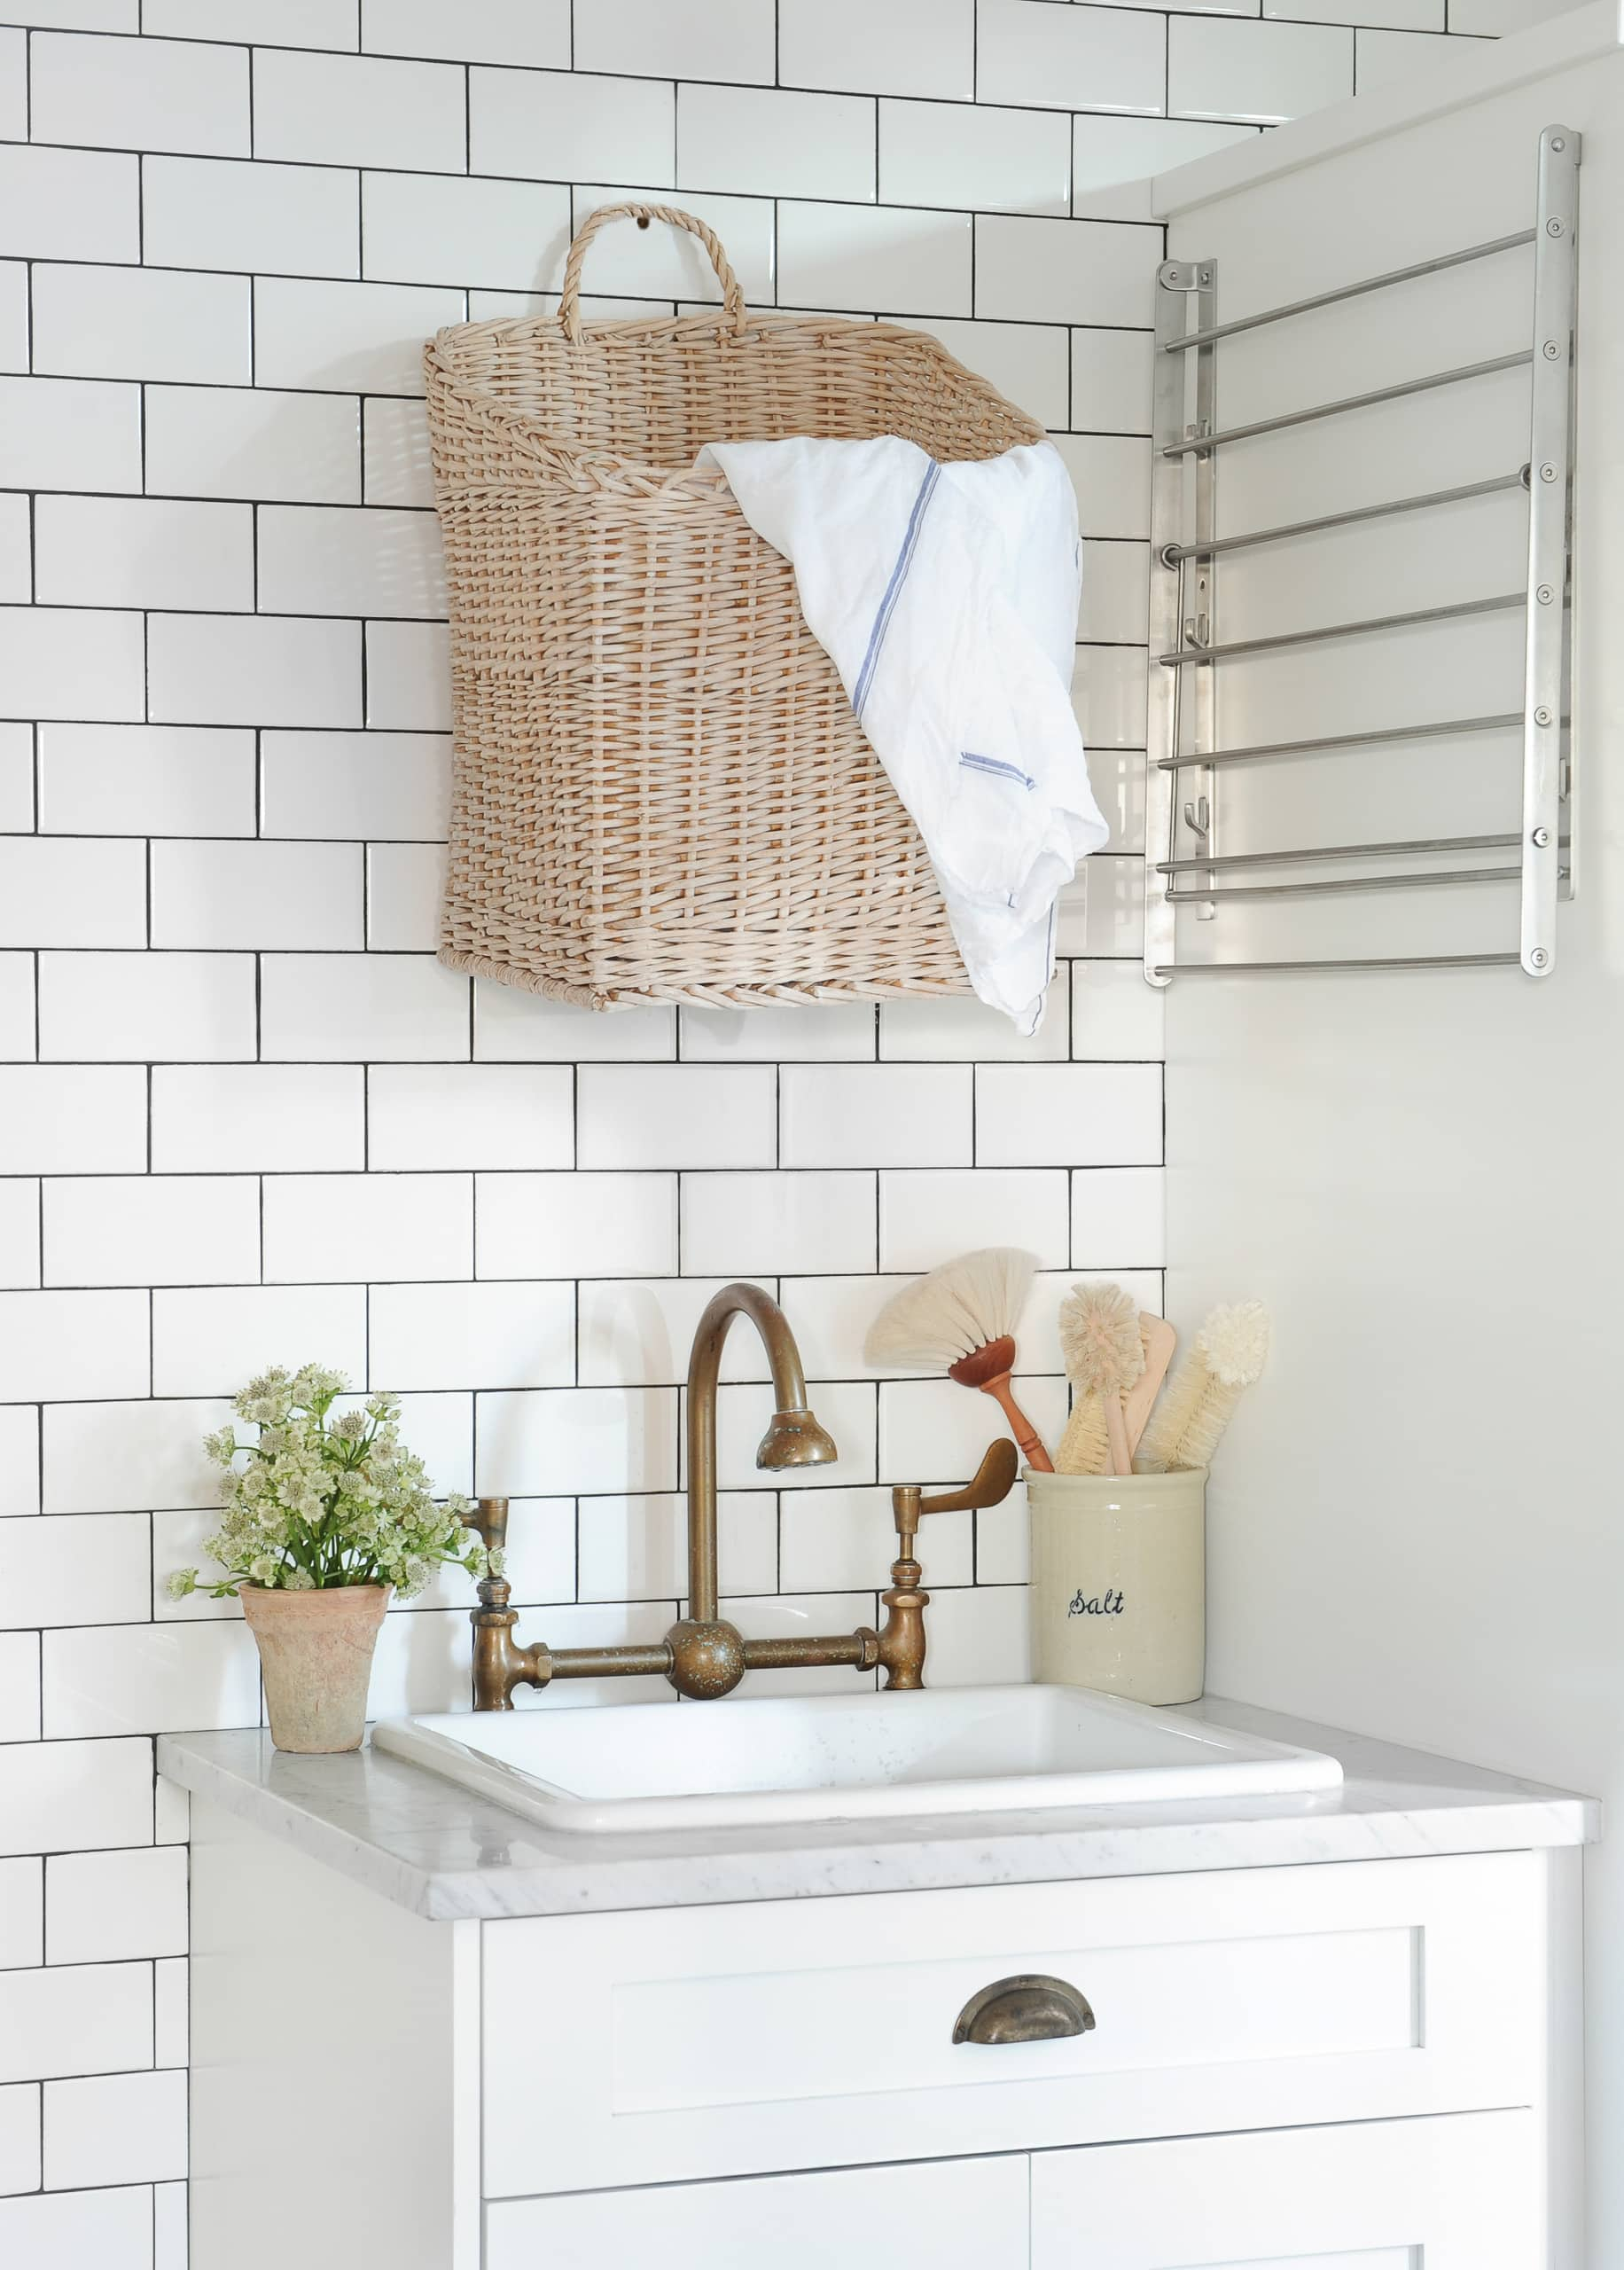 Sink in a laundry room